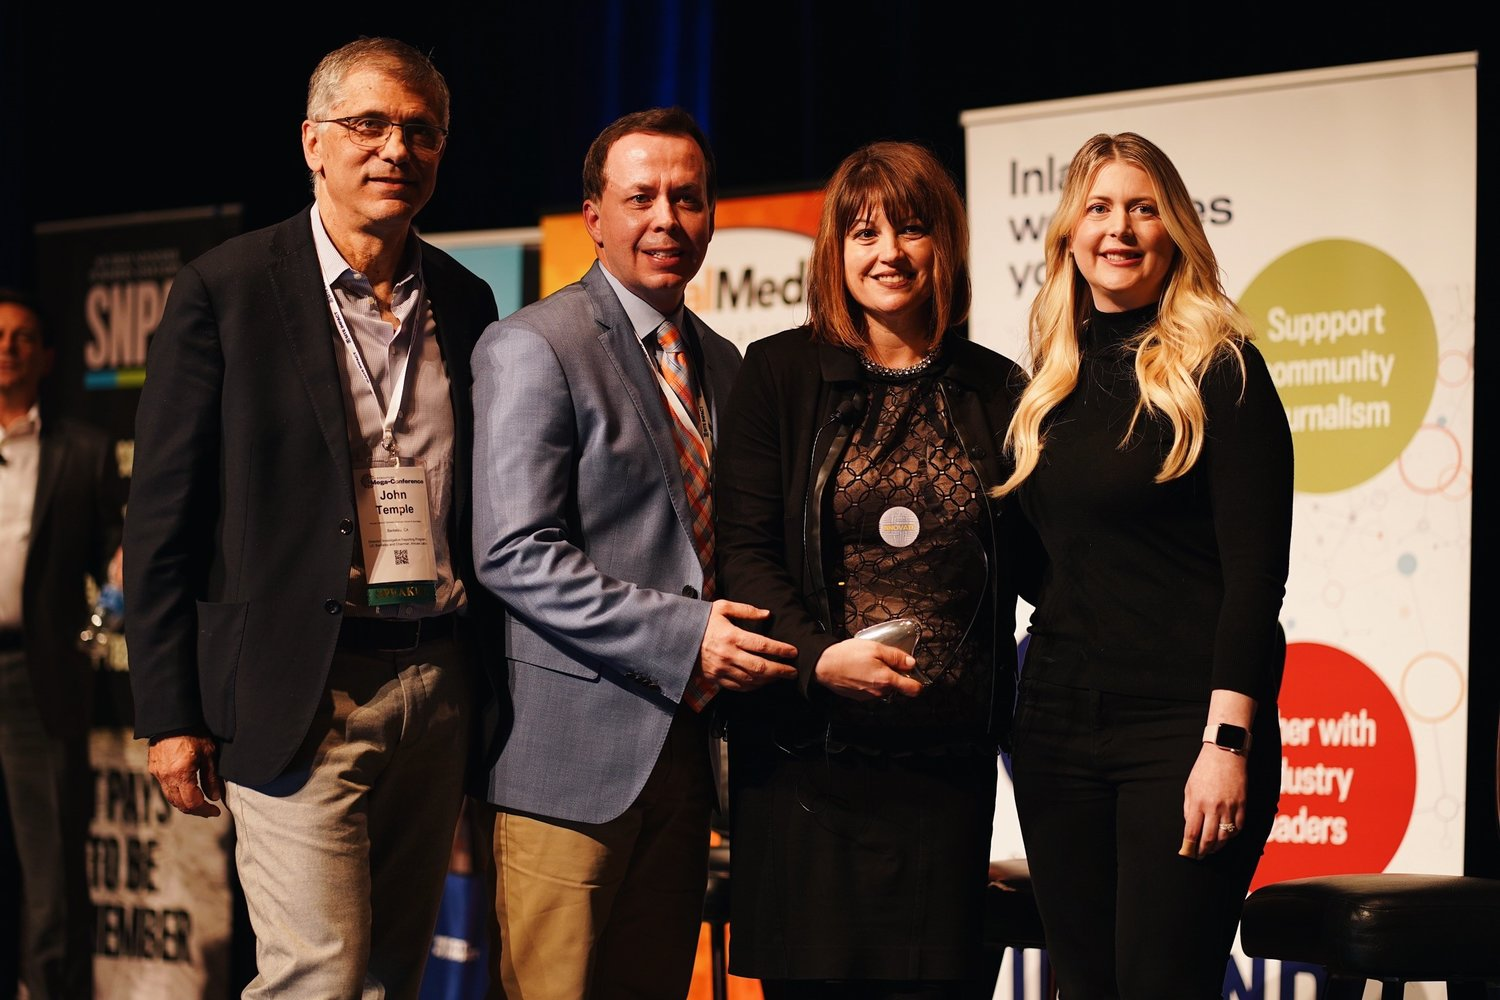 Pictured left to right: John Temple (one of the Mega-Innovation Award judges), and Jason Taylor, Rebecca Capparelli and Lyndsi Lane of GateHouse Live.